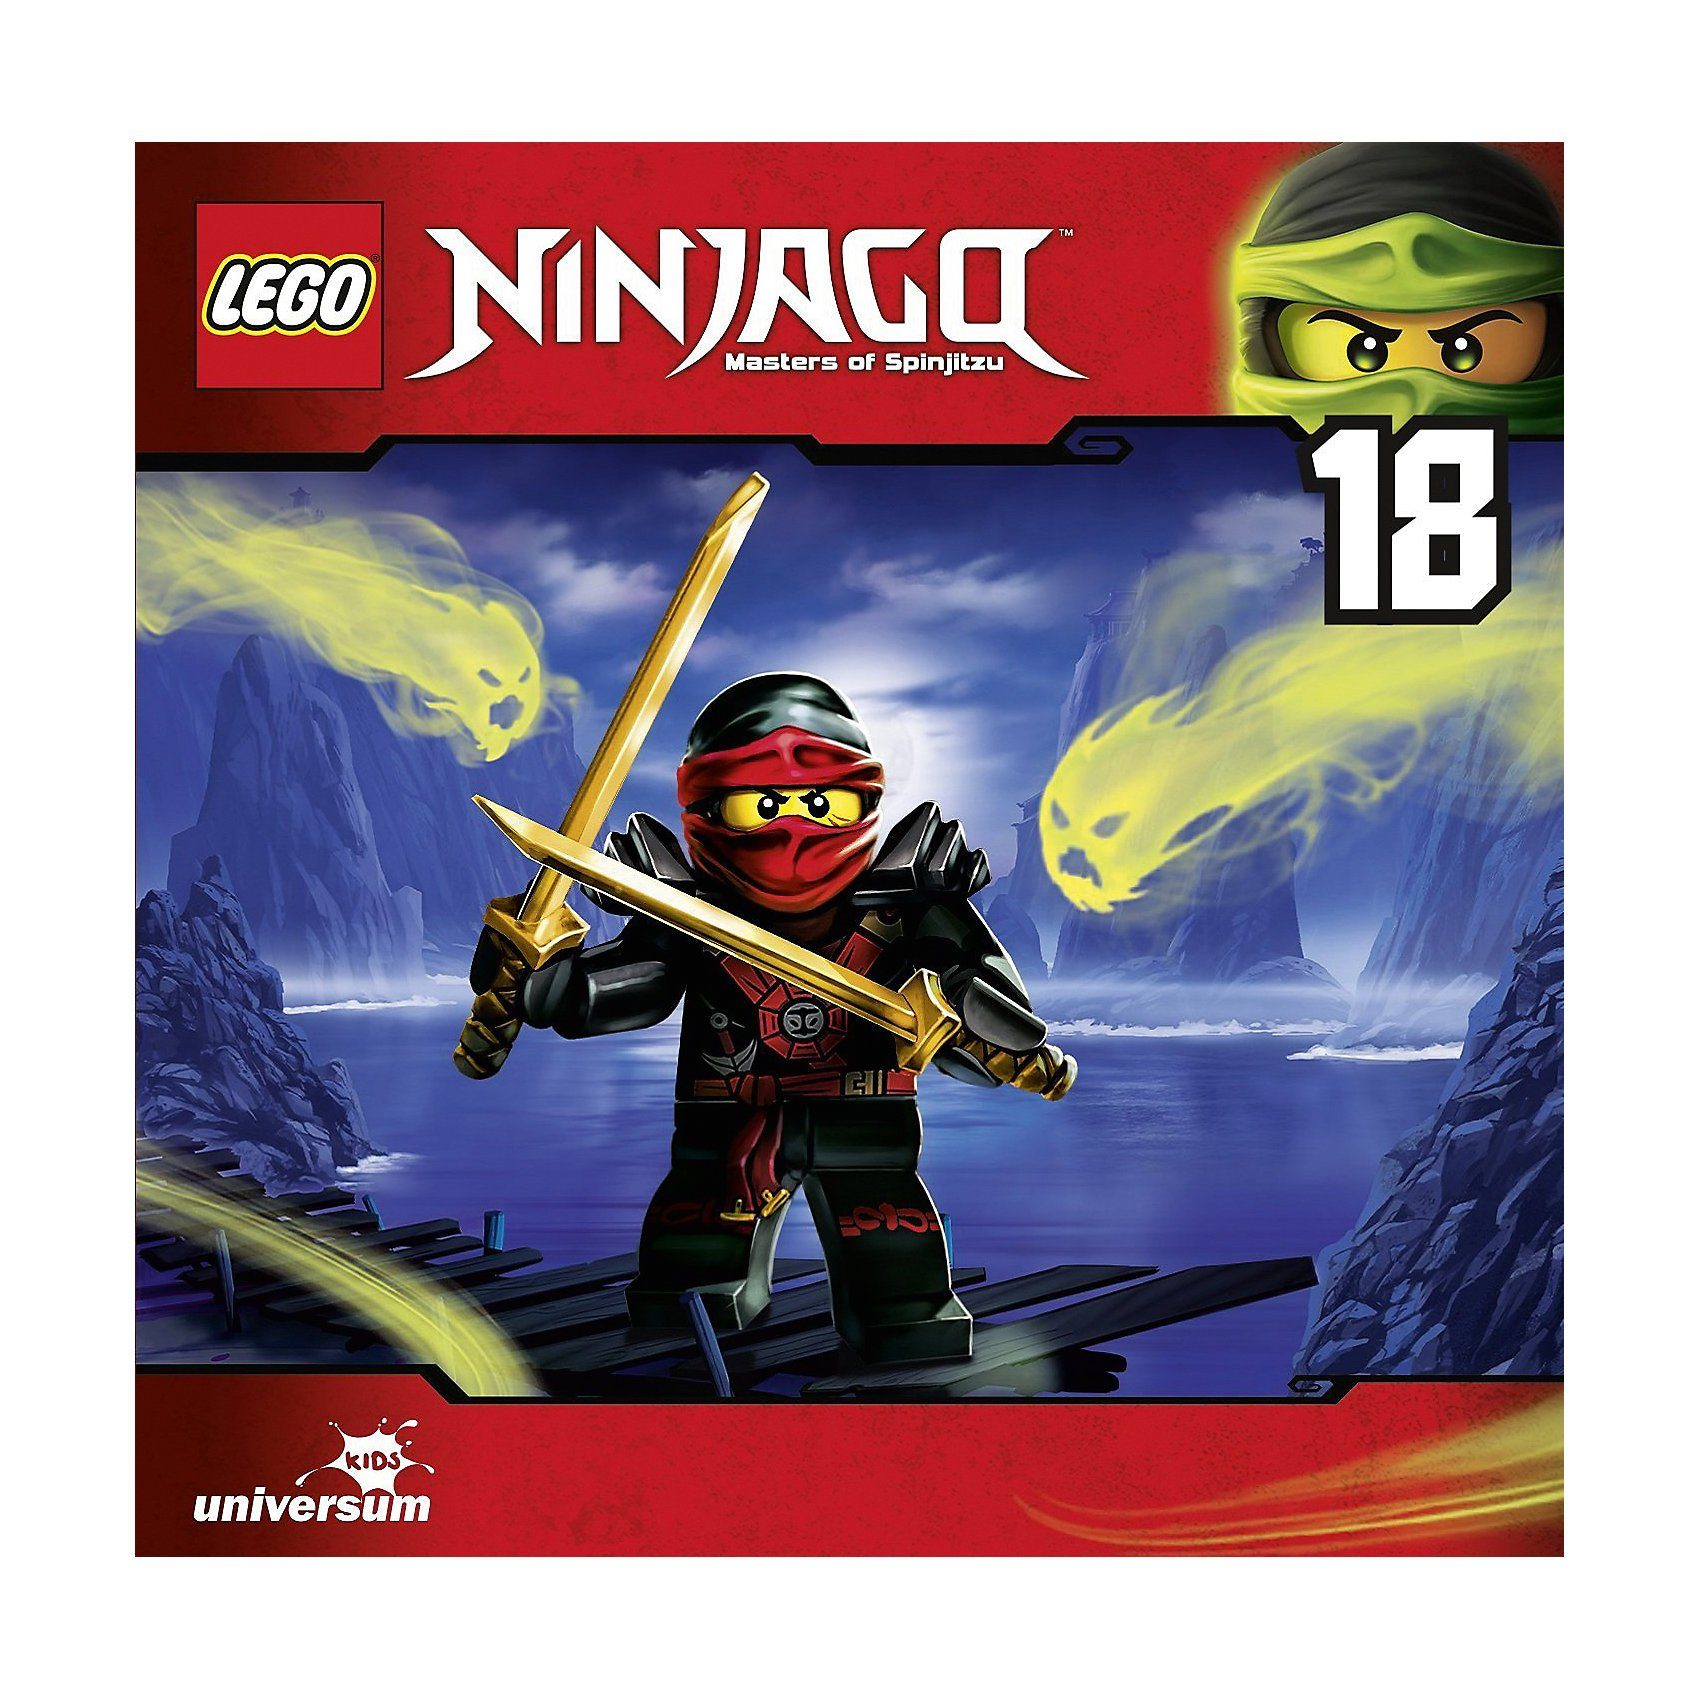 CD Ninjago - Masters of Spinjitzu 18